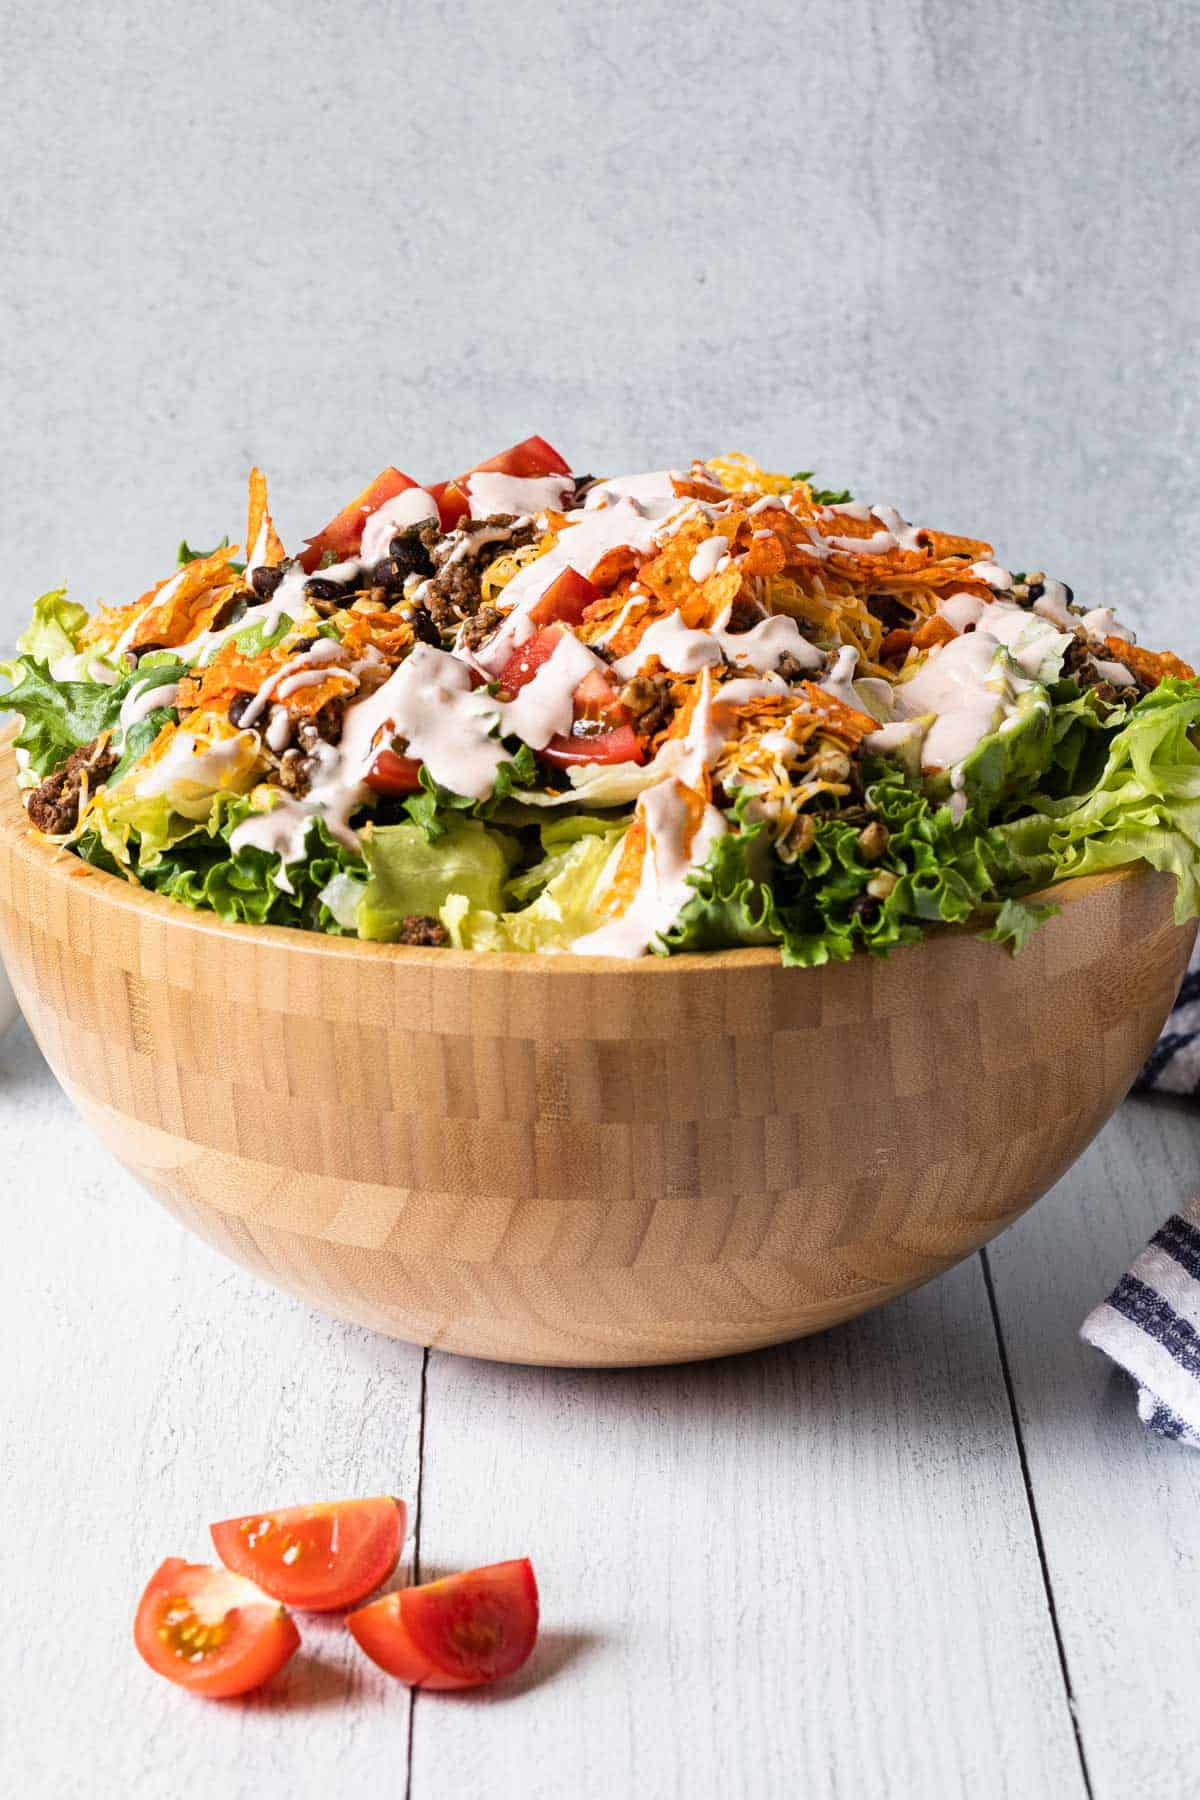 a large wooden bowl overflowing with taco salad drizzled with creamy dressing